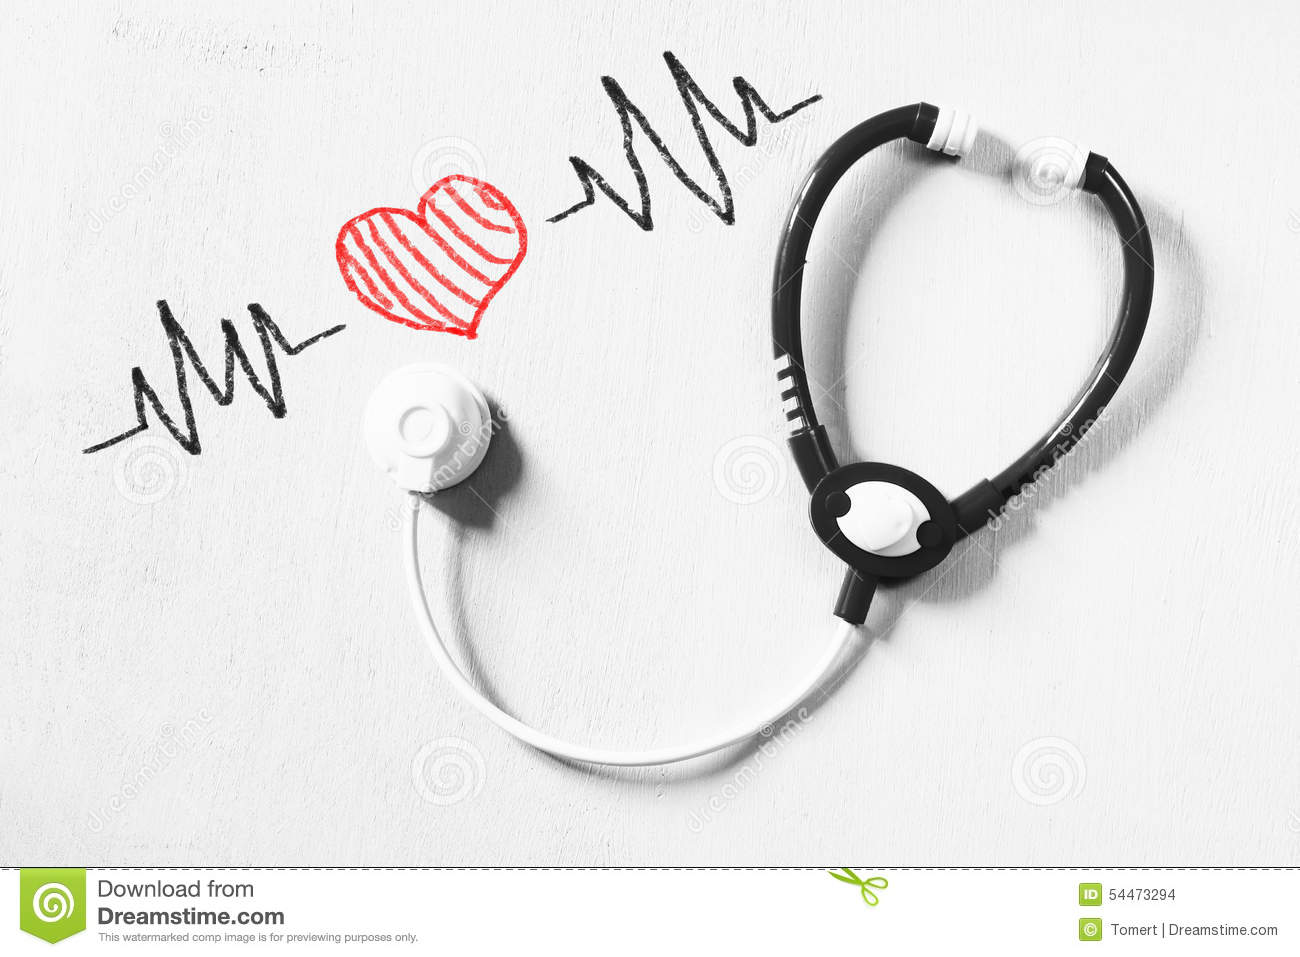 4 040 Heartbeat Black Background Photos Free Royalty Free Stock Photos From Dreamstime